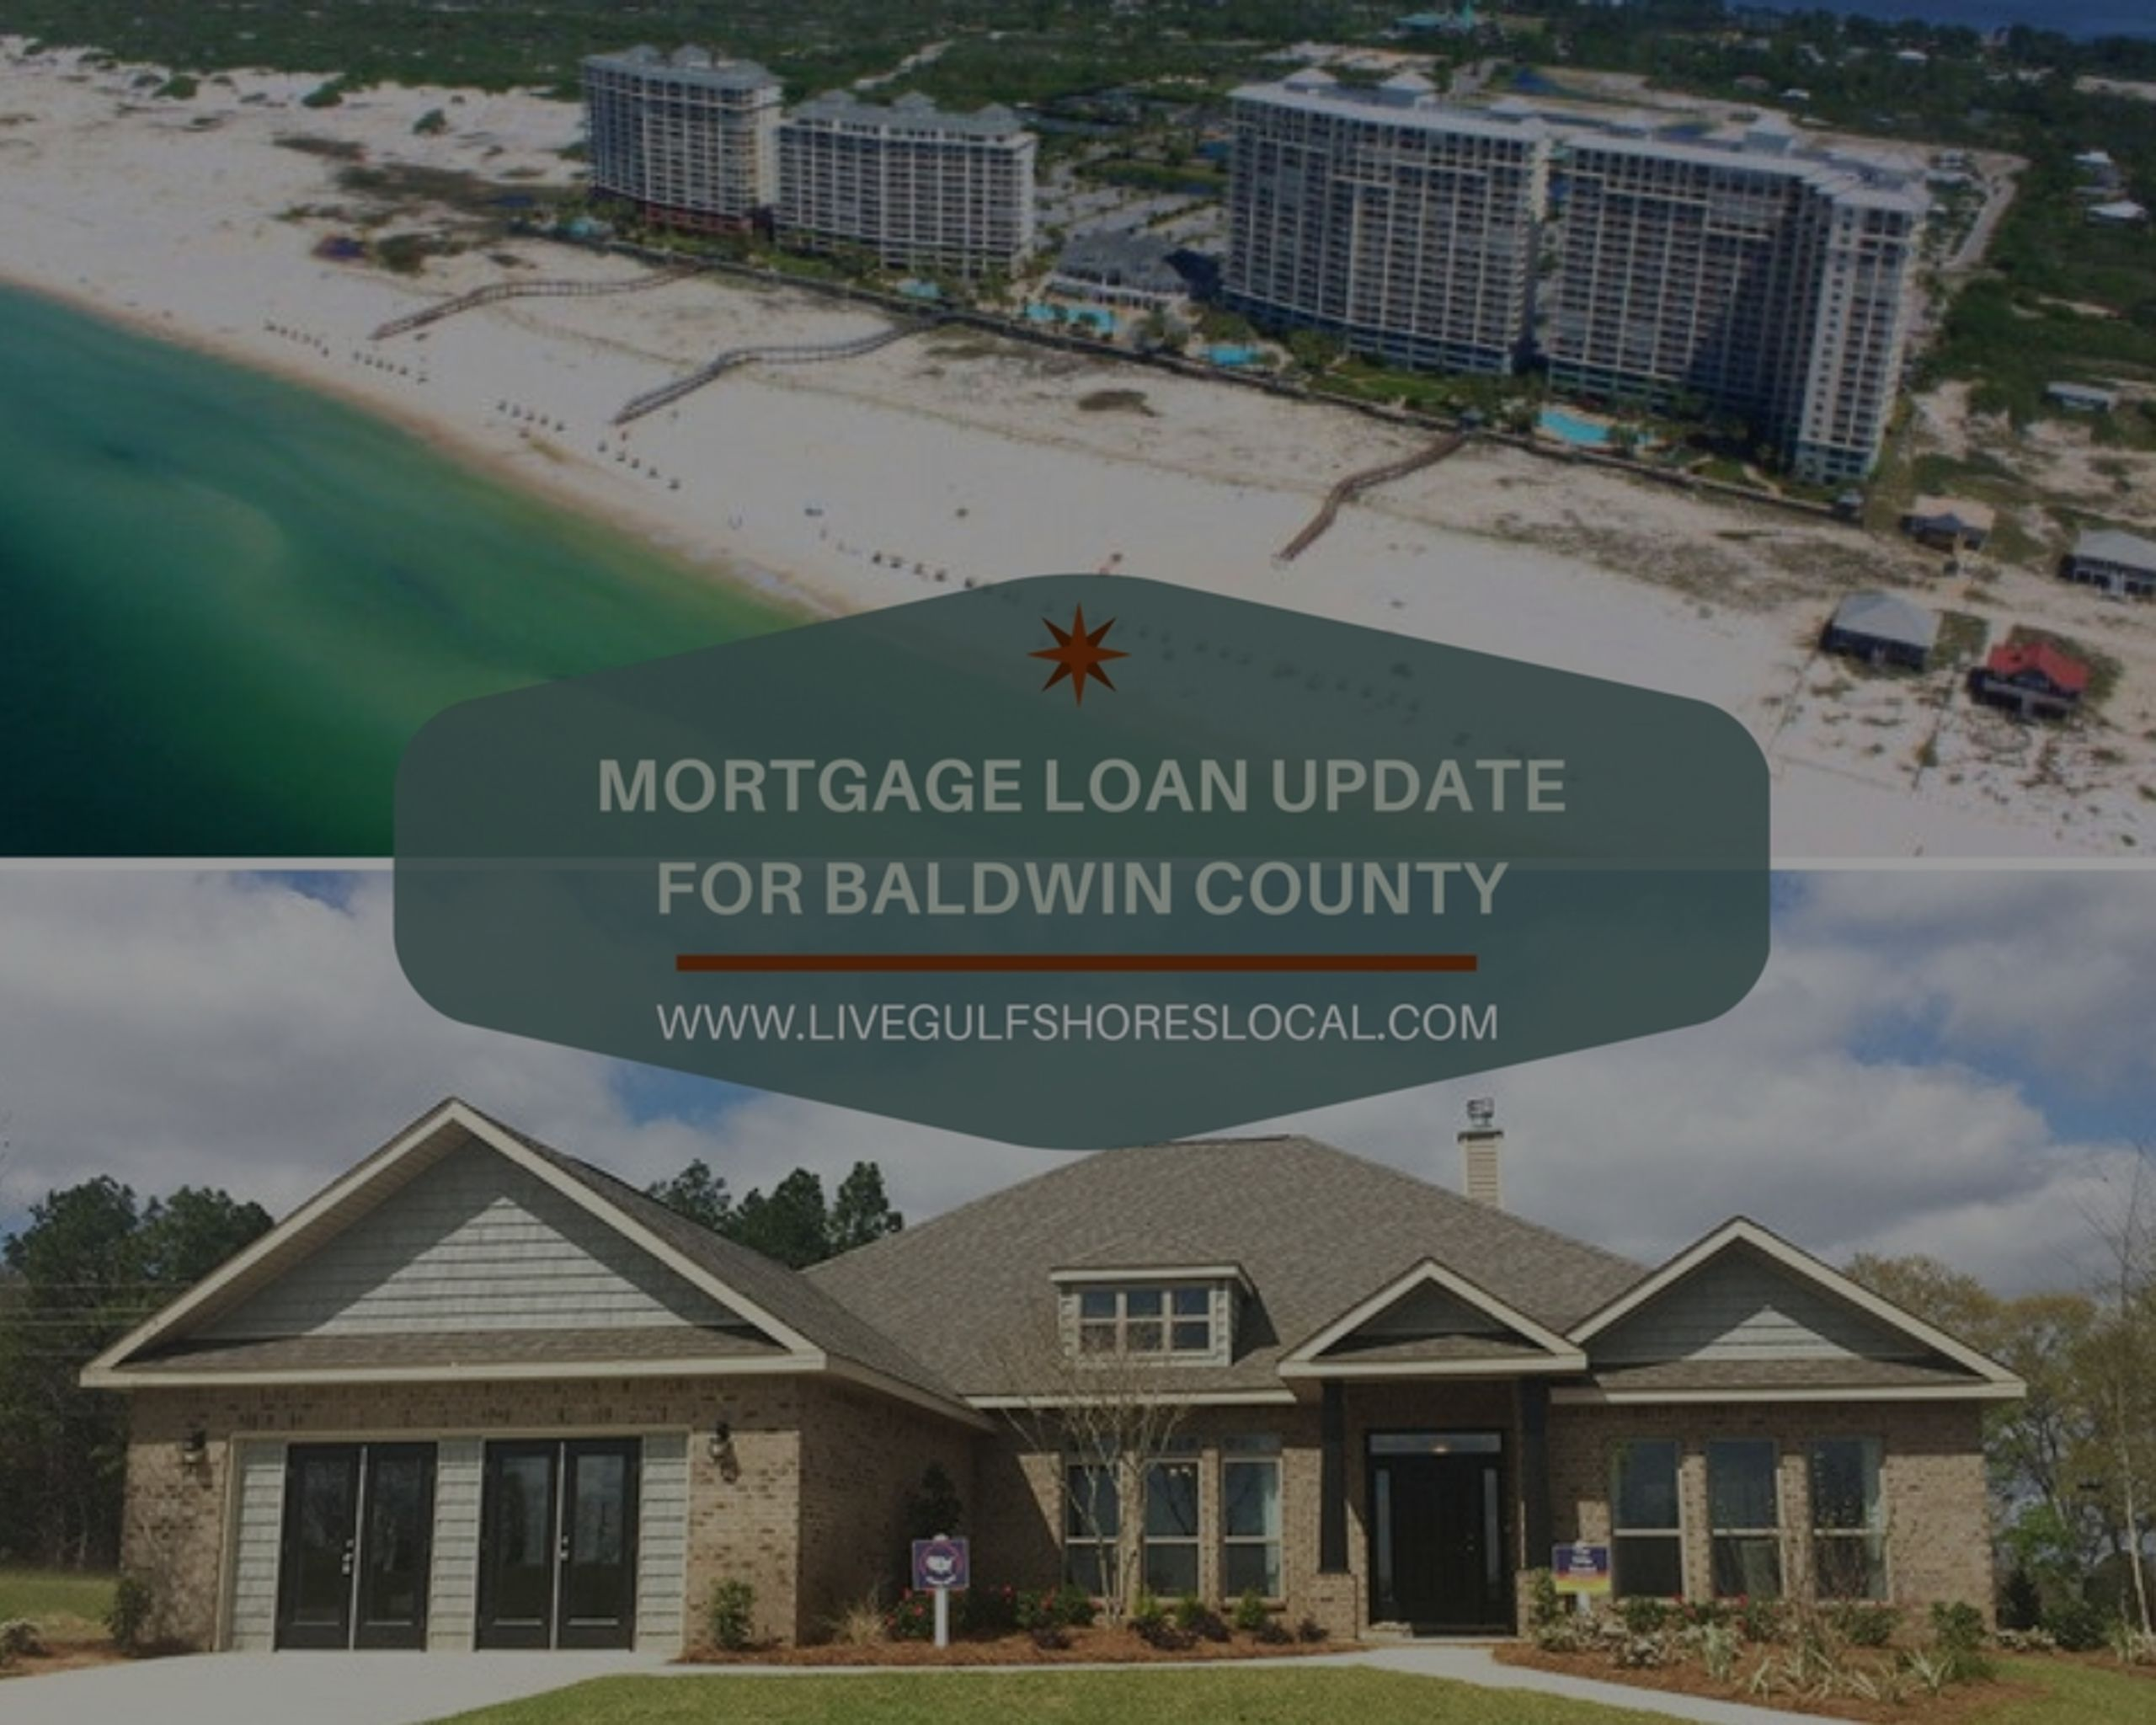 Mortgage Loan Update for Baldwin County – 5/4/19